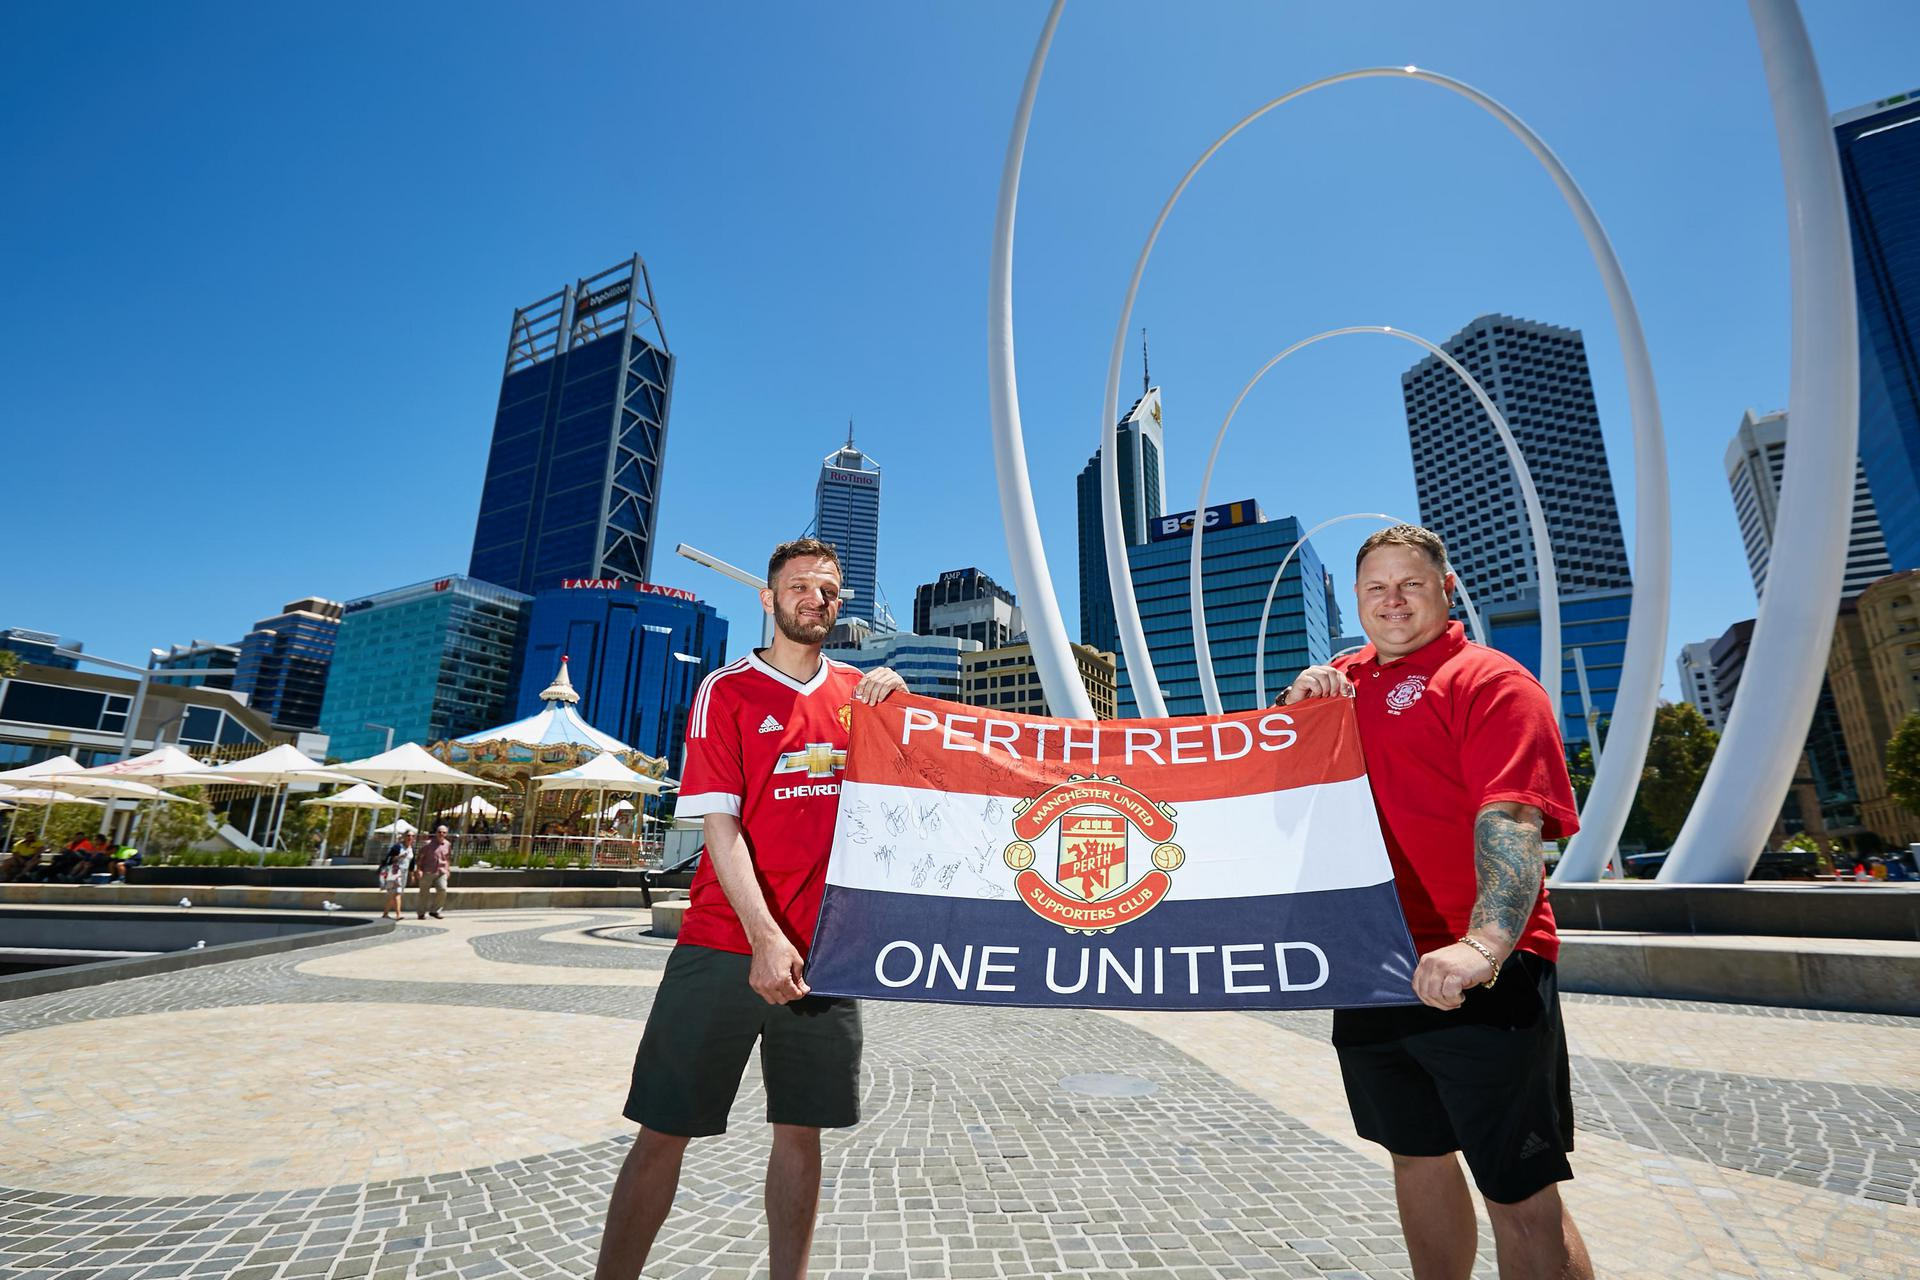 Two fans hold aloft a 'Perth Reds' flag